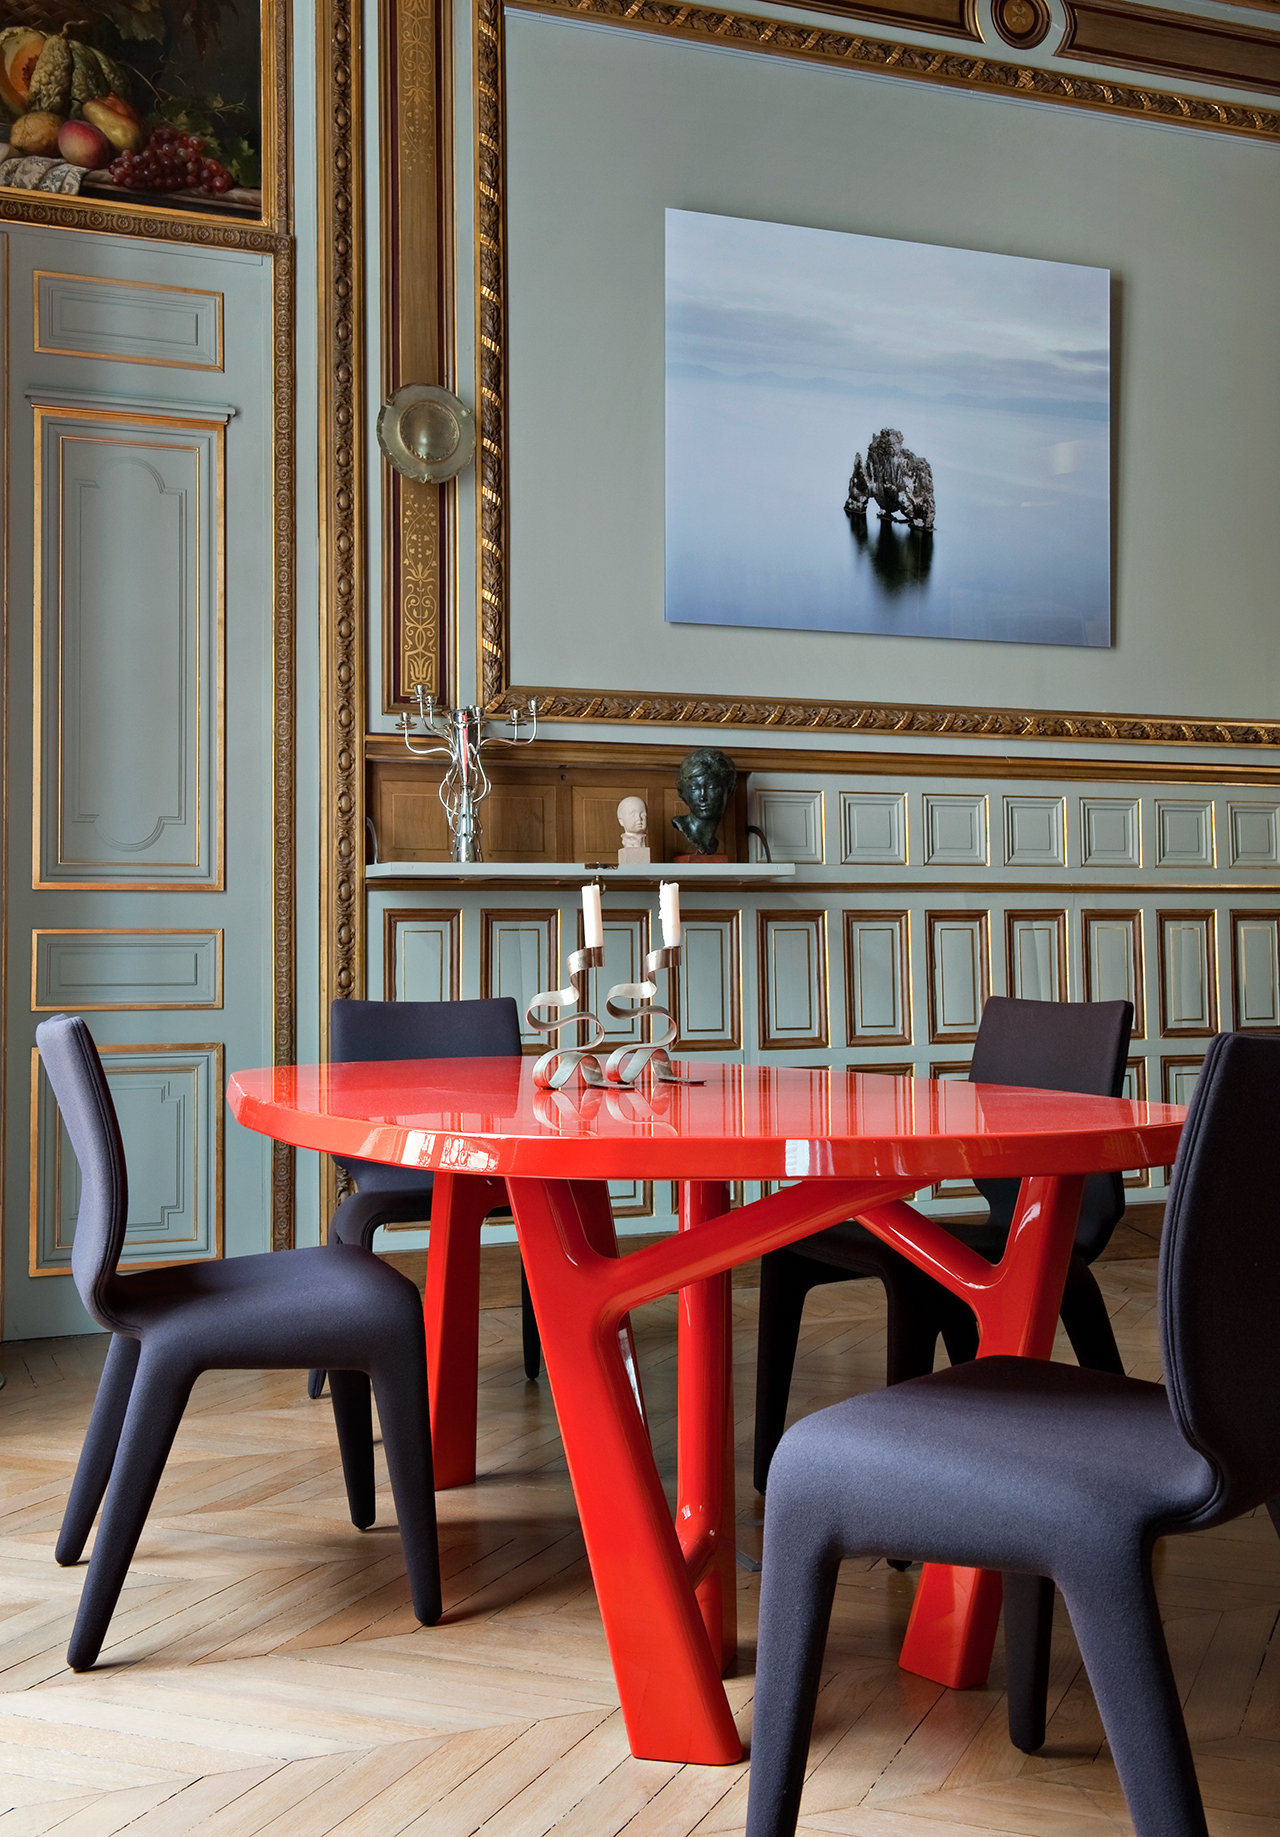 Elle Decoration France A Kaleidoscope Of Uncompromising Design Ideas By Gestalten